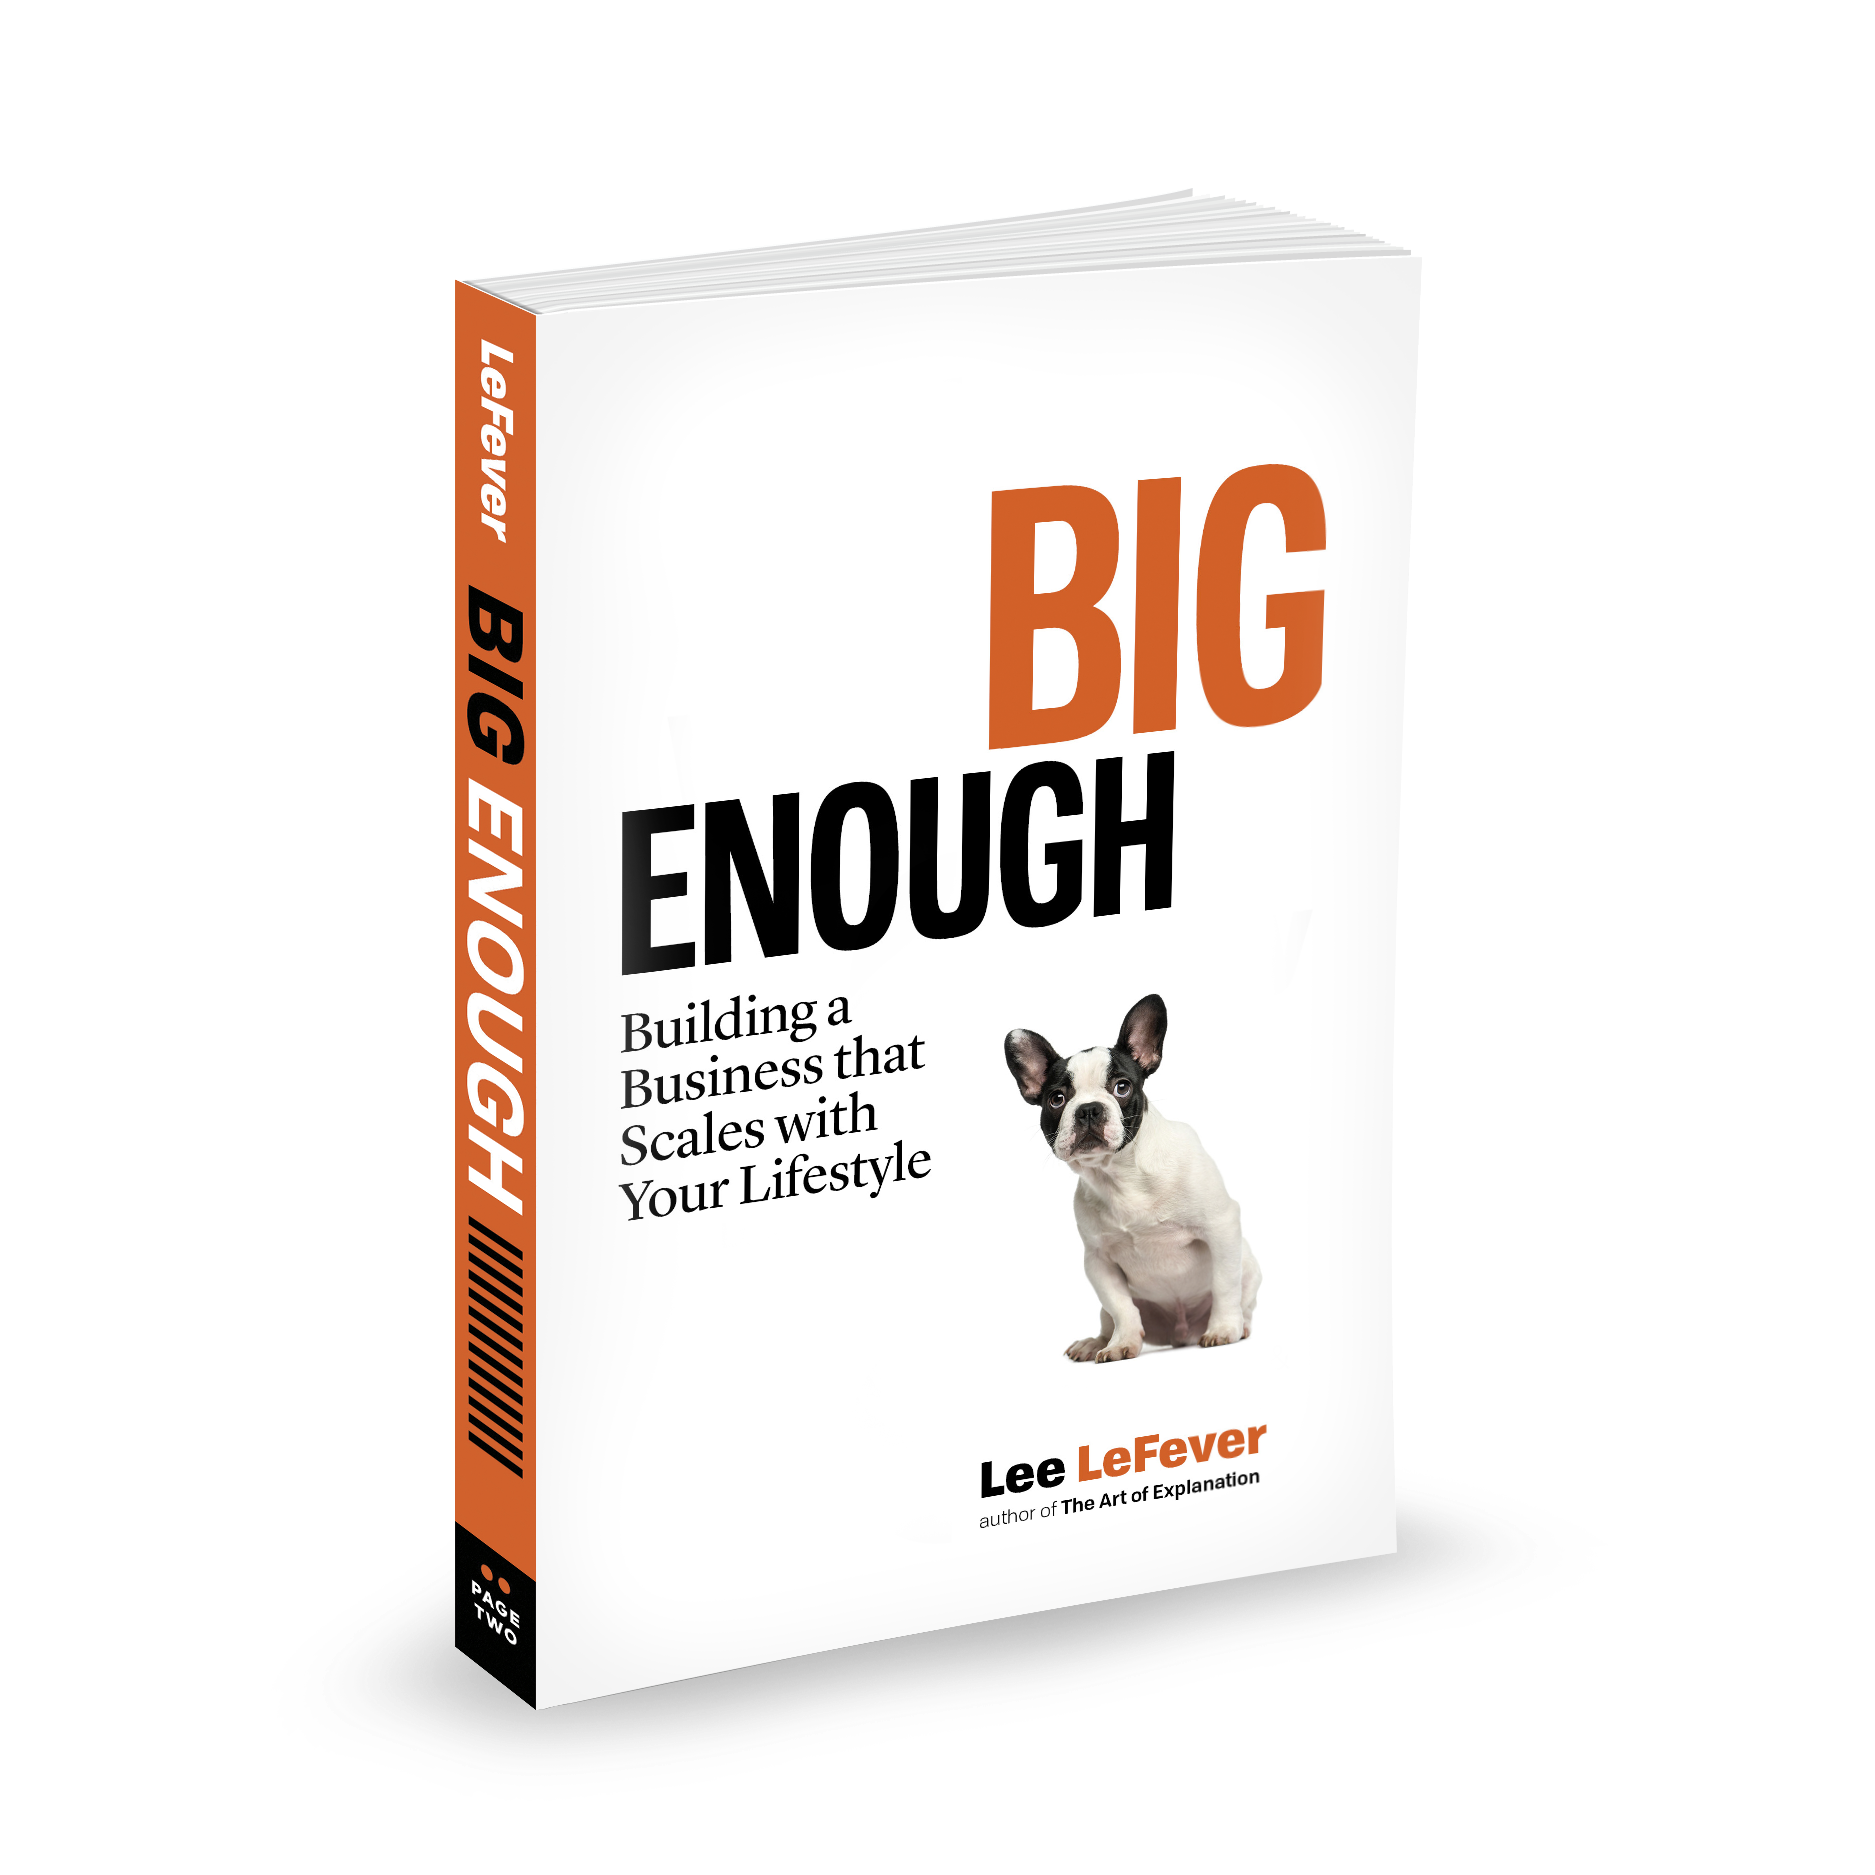 Big Enough Book Cover